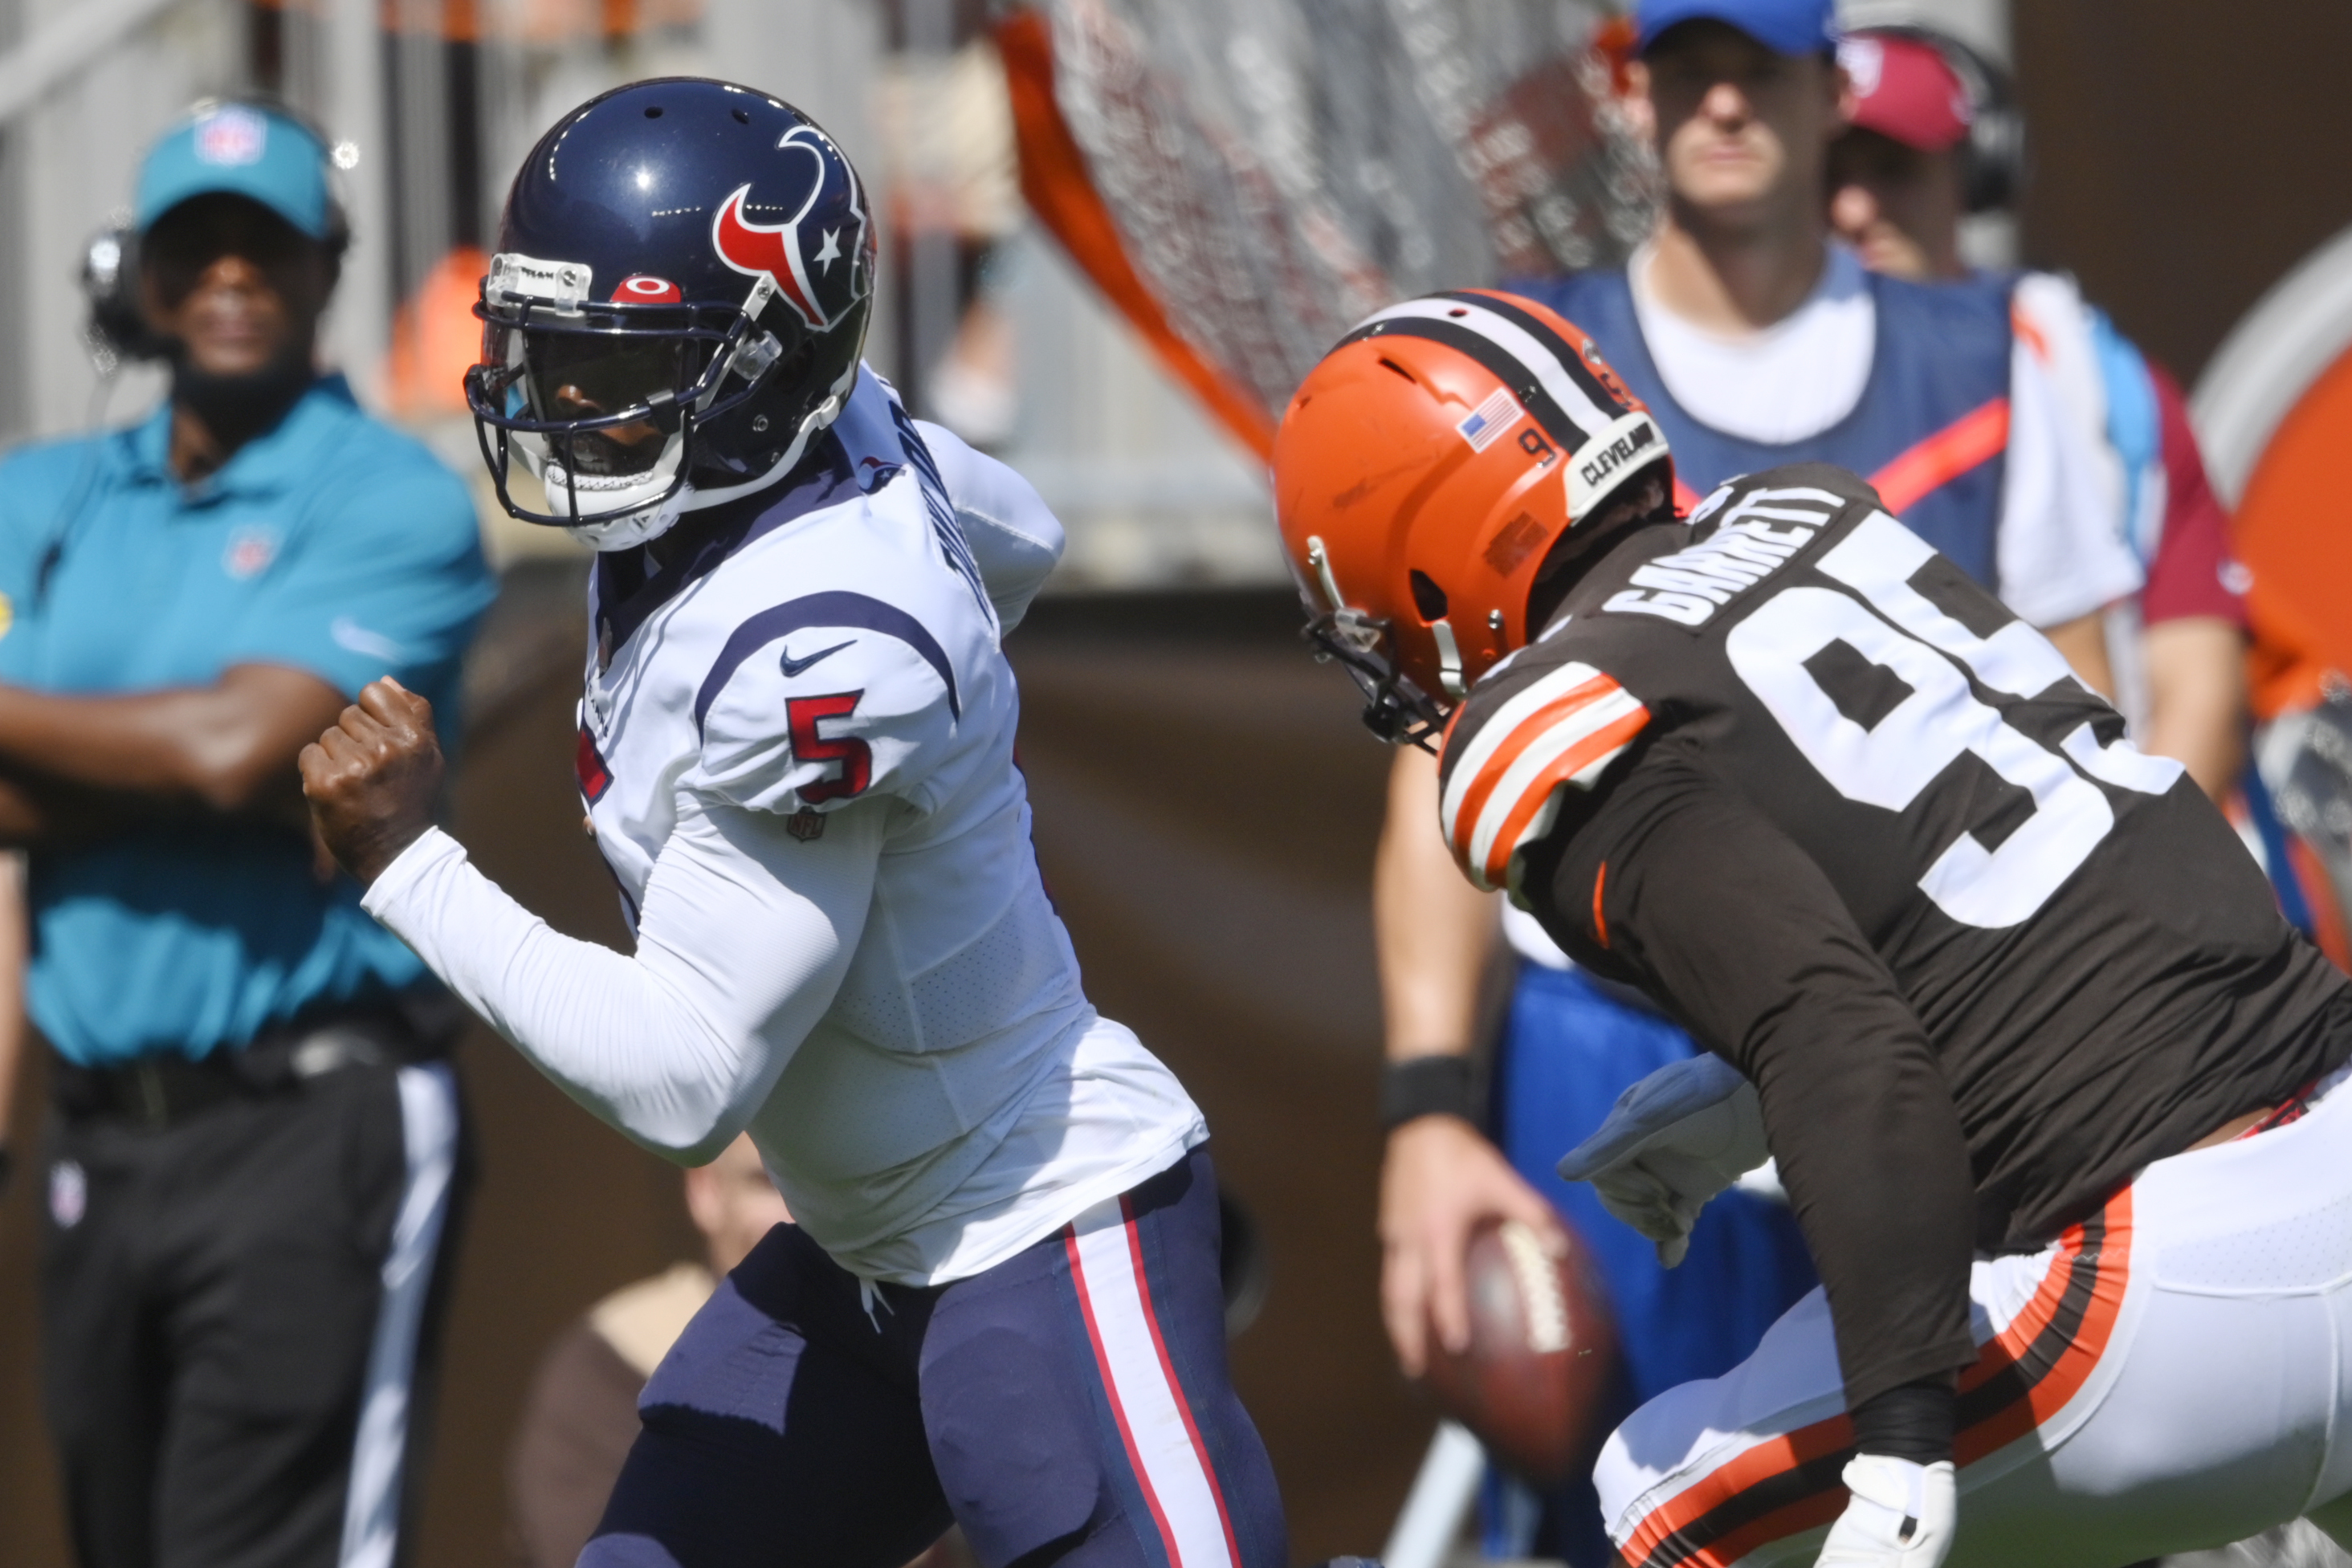 Browns defensive end Myles Garrett (95) has had 10 or more sacks the past three seasons and made the All-Pro team last year.